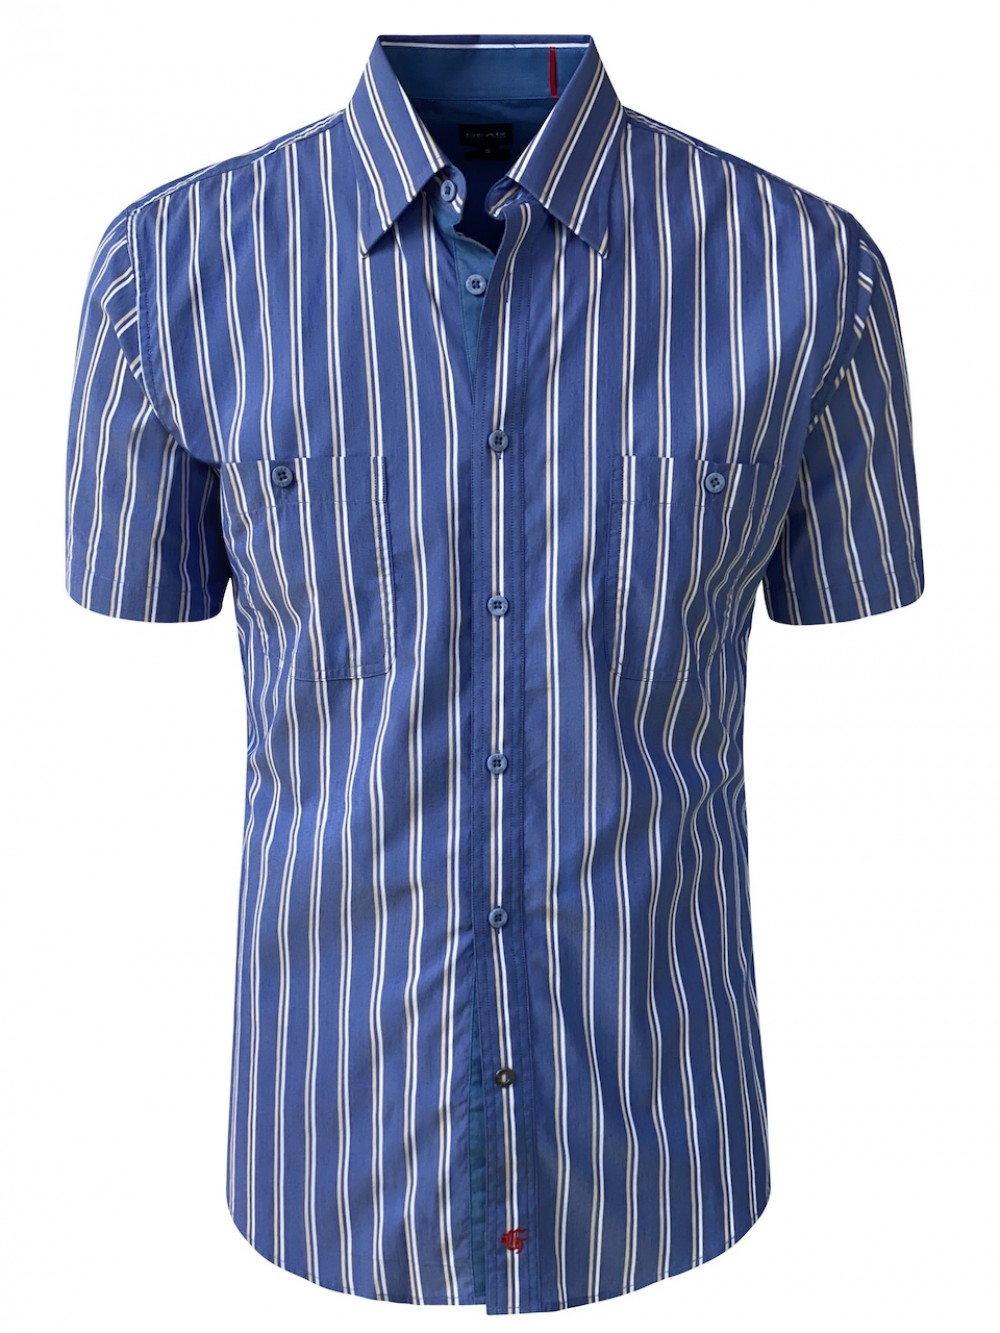 Mens Slim fit shirt RAFFAELE SHM1302 medium blue